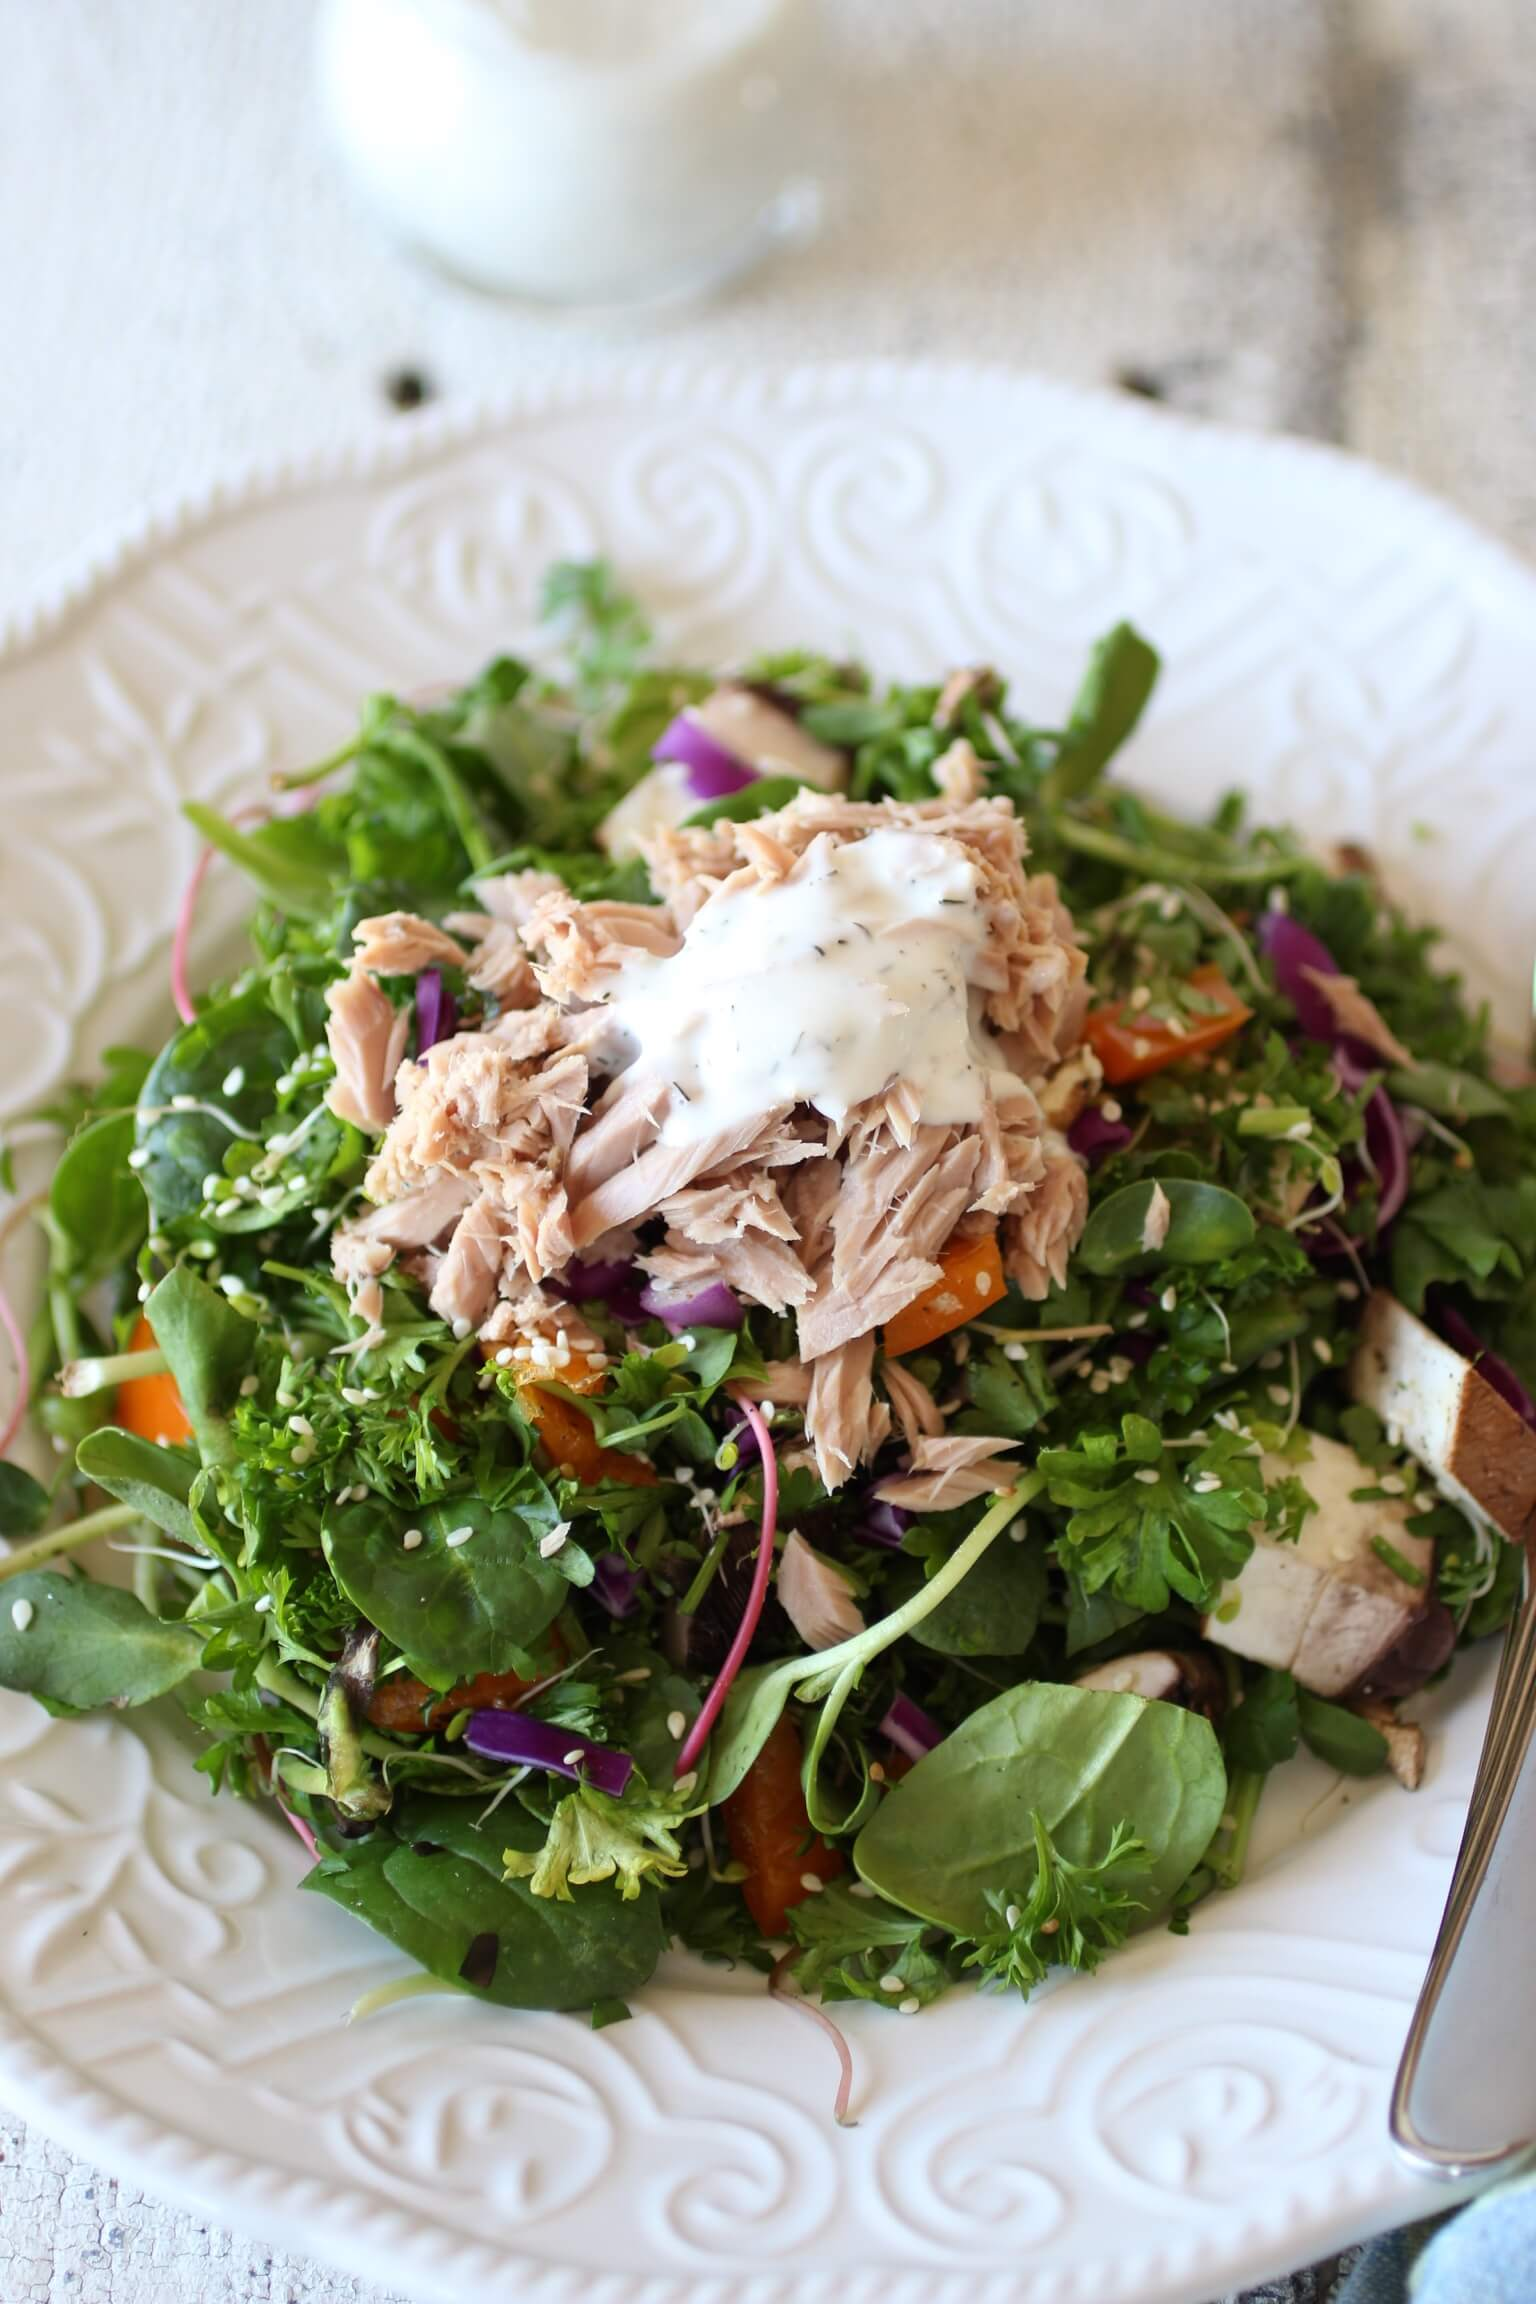 Simple Tuna Salad recipe